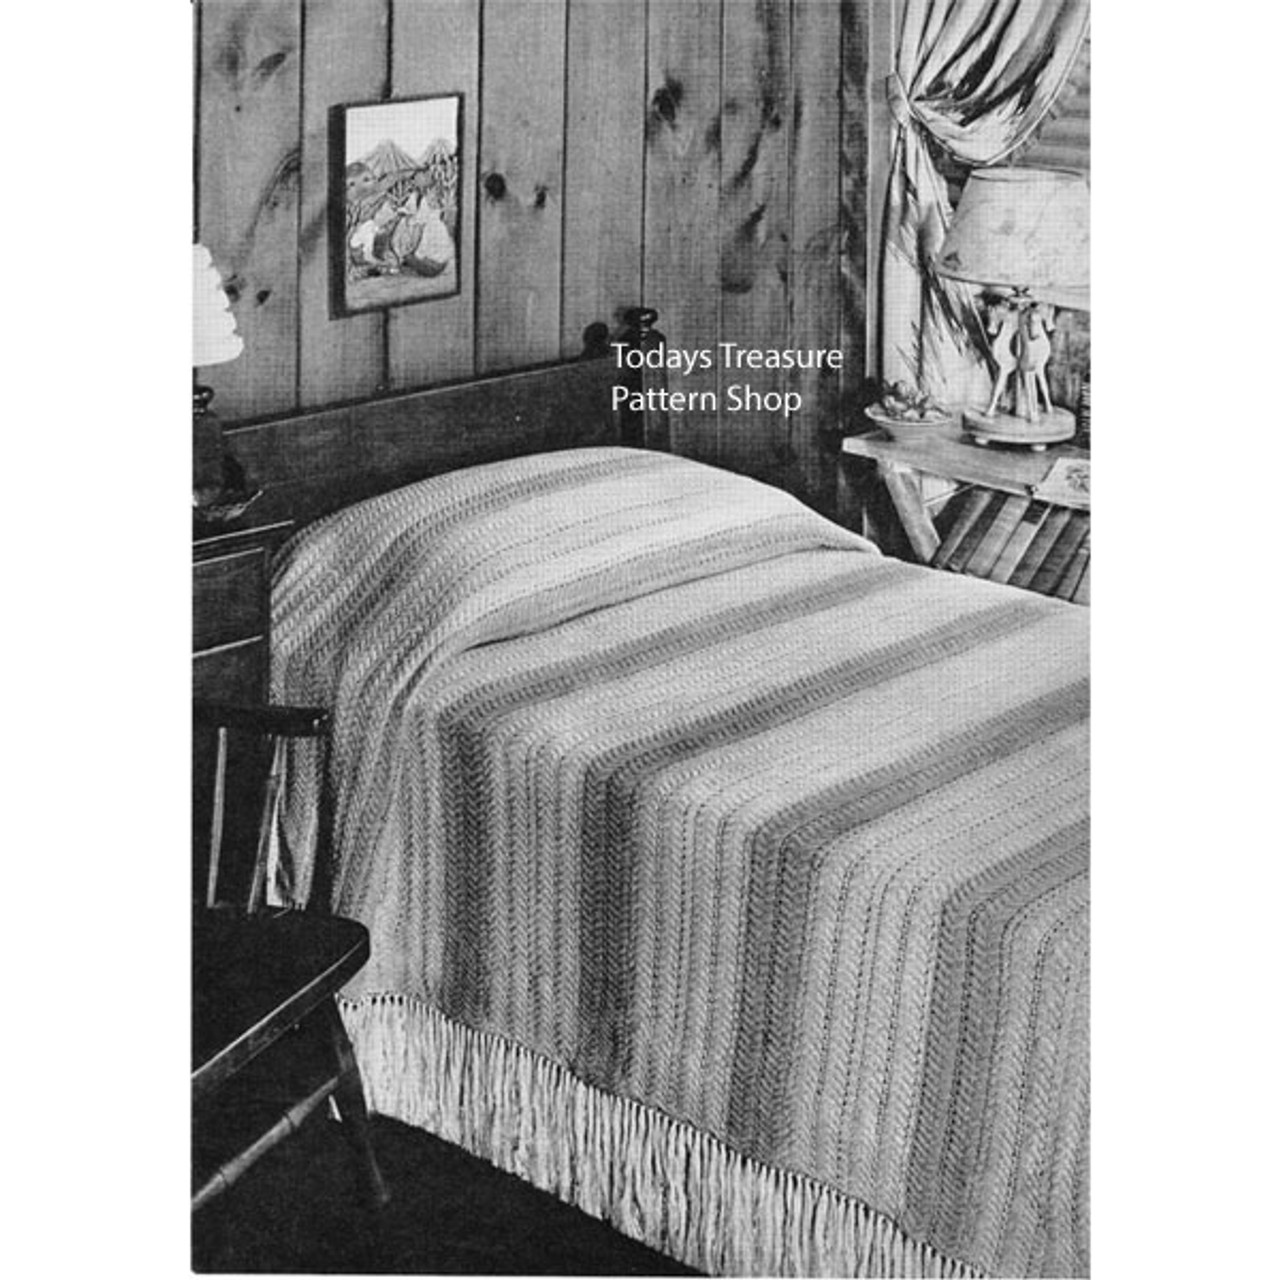 Striped Bedspread Knitting pattern